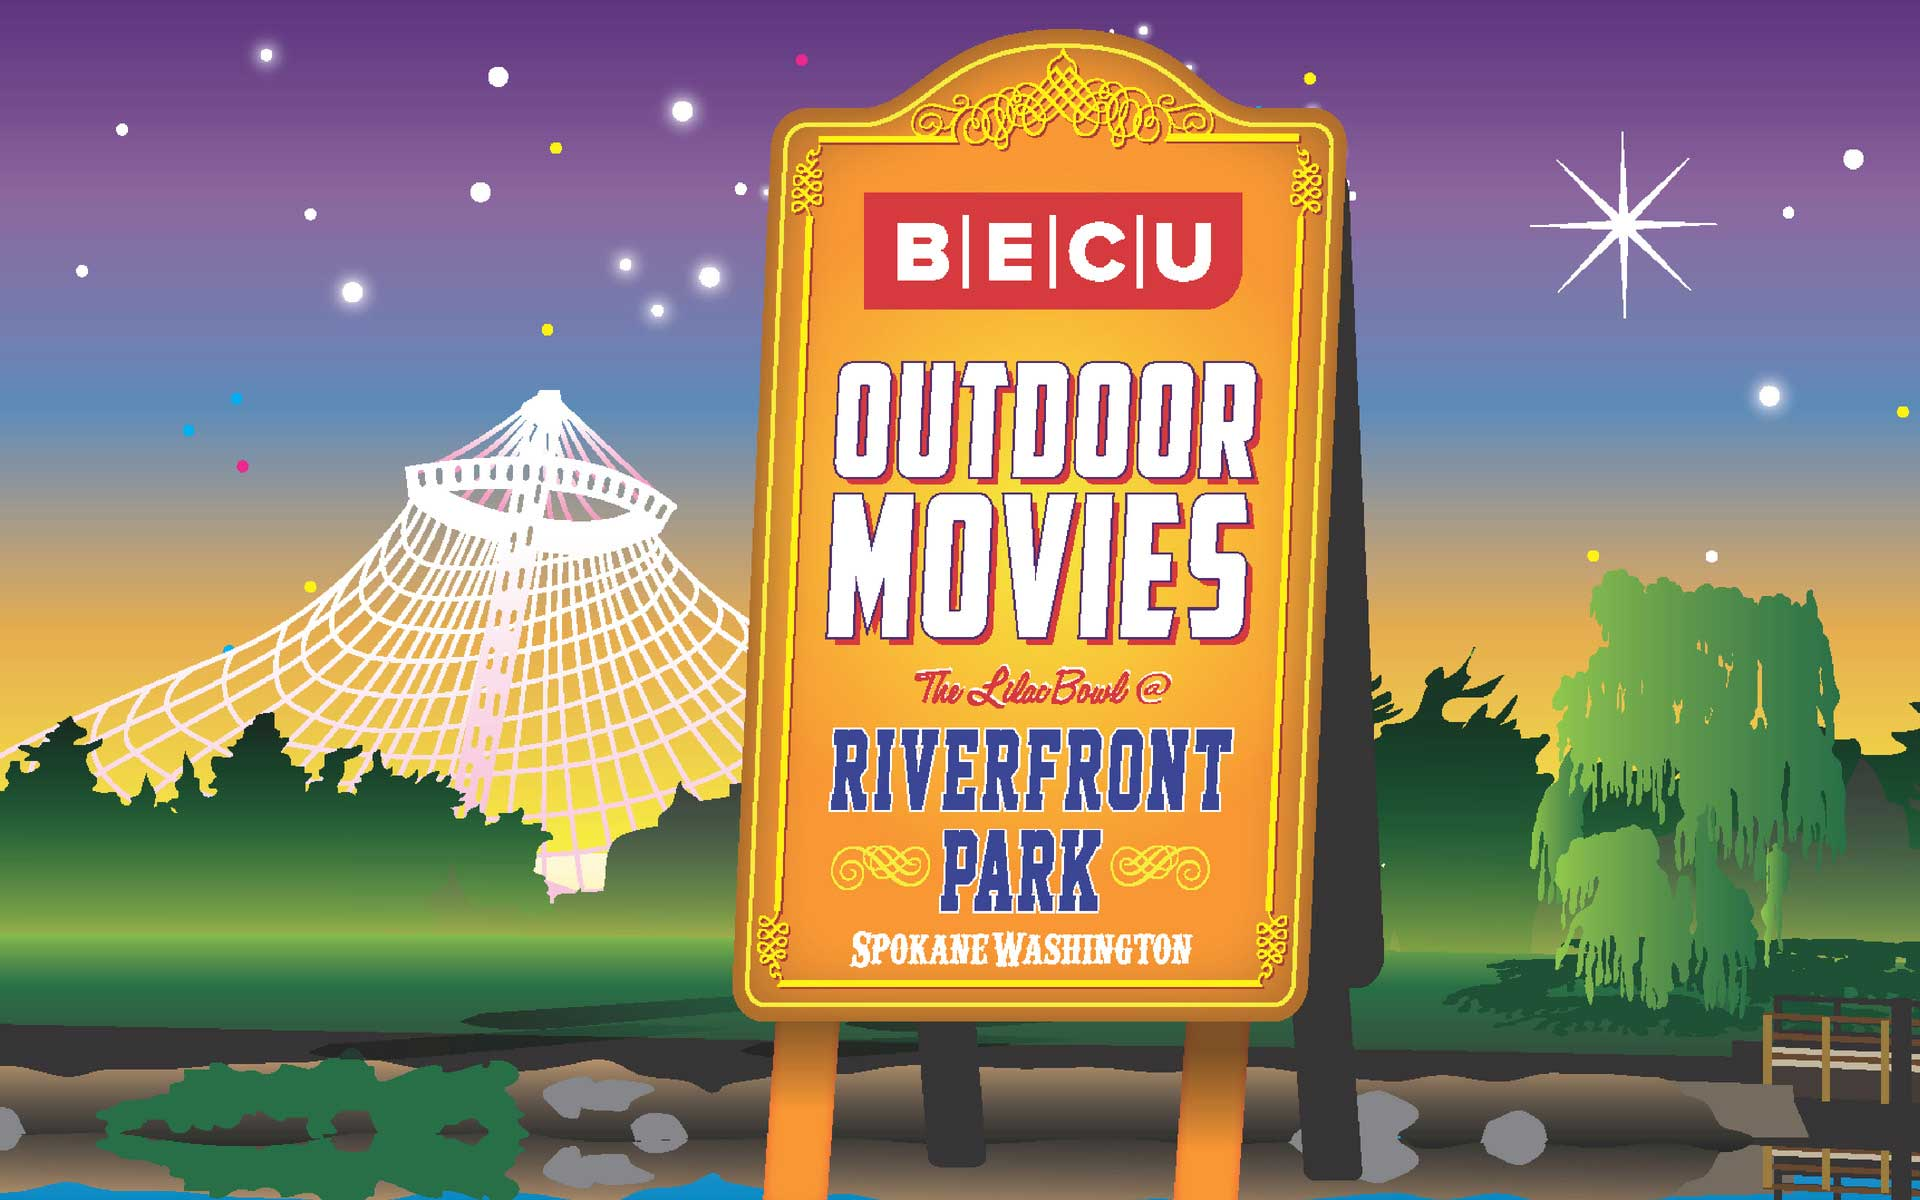 becu outdoor movies return to riverfront for 2018 season city of